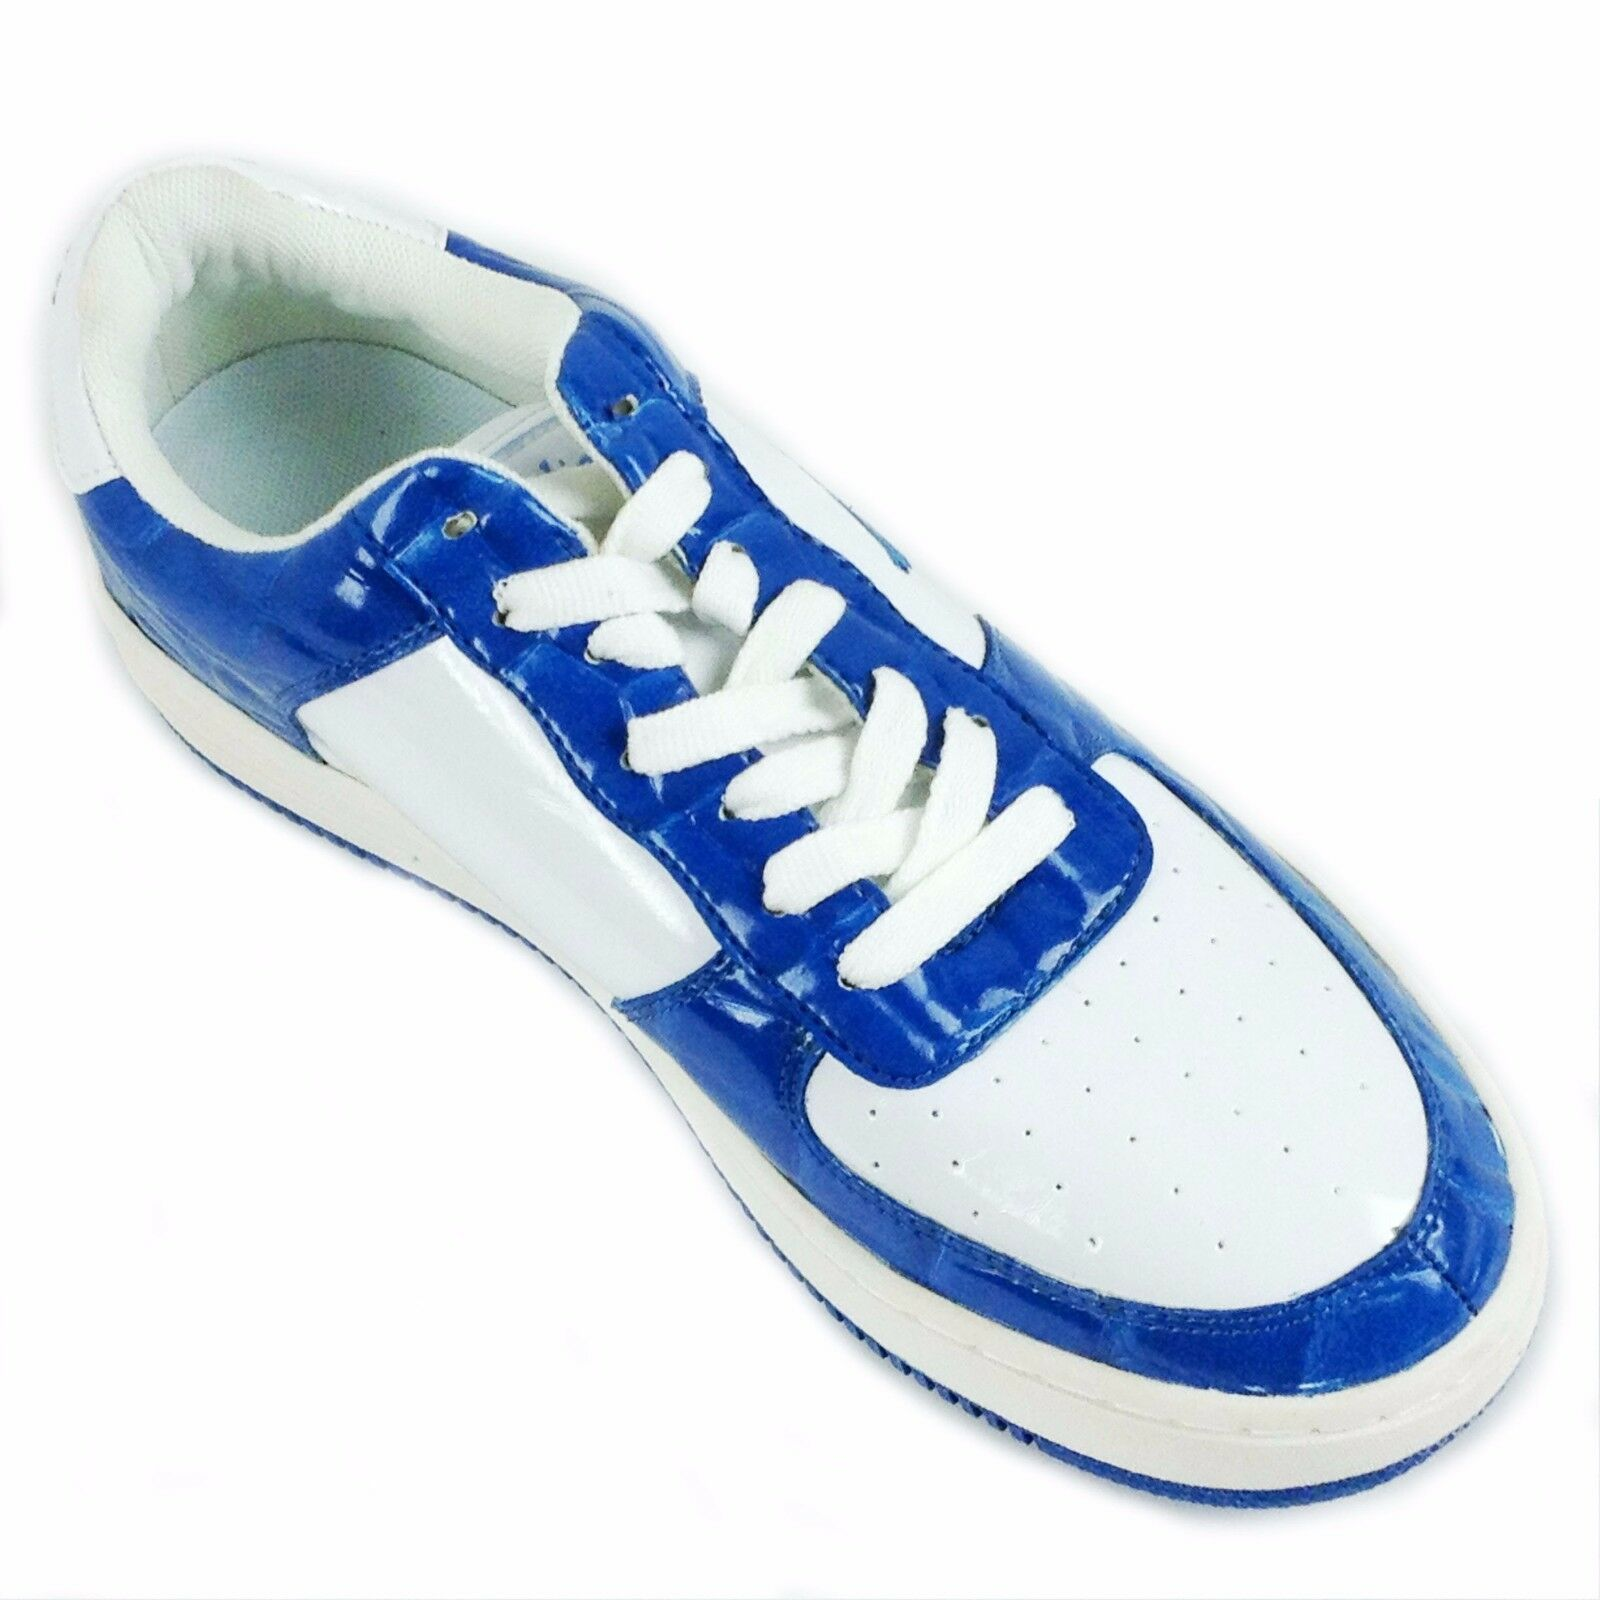 Slicks, 1688-72 DK. BLUE-WHITE MEN'S ATHLETIC SHOES